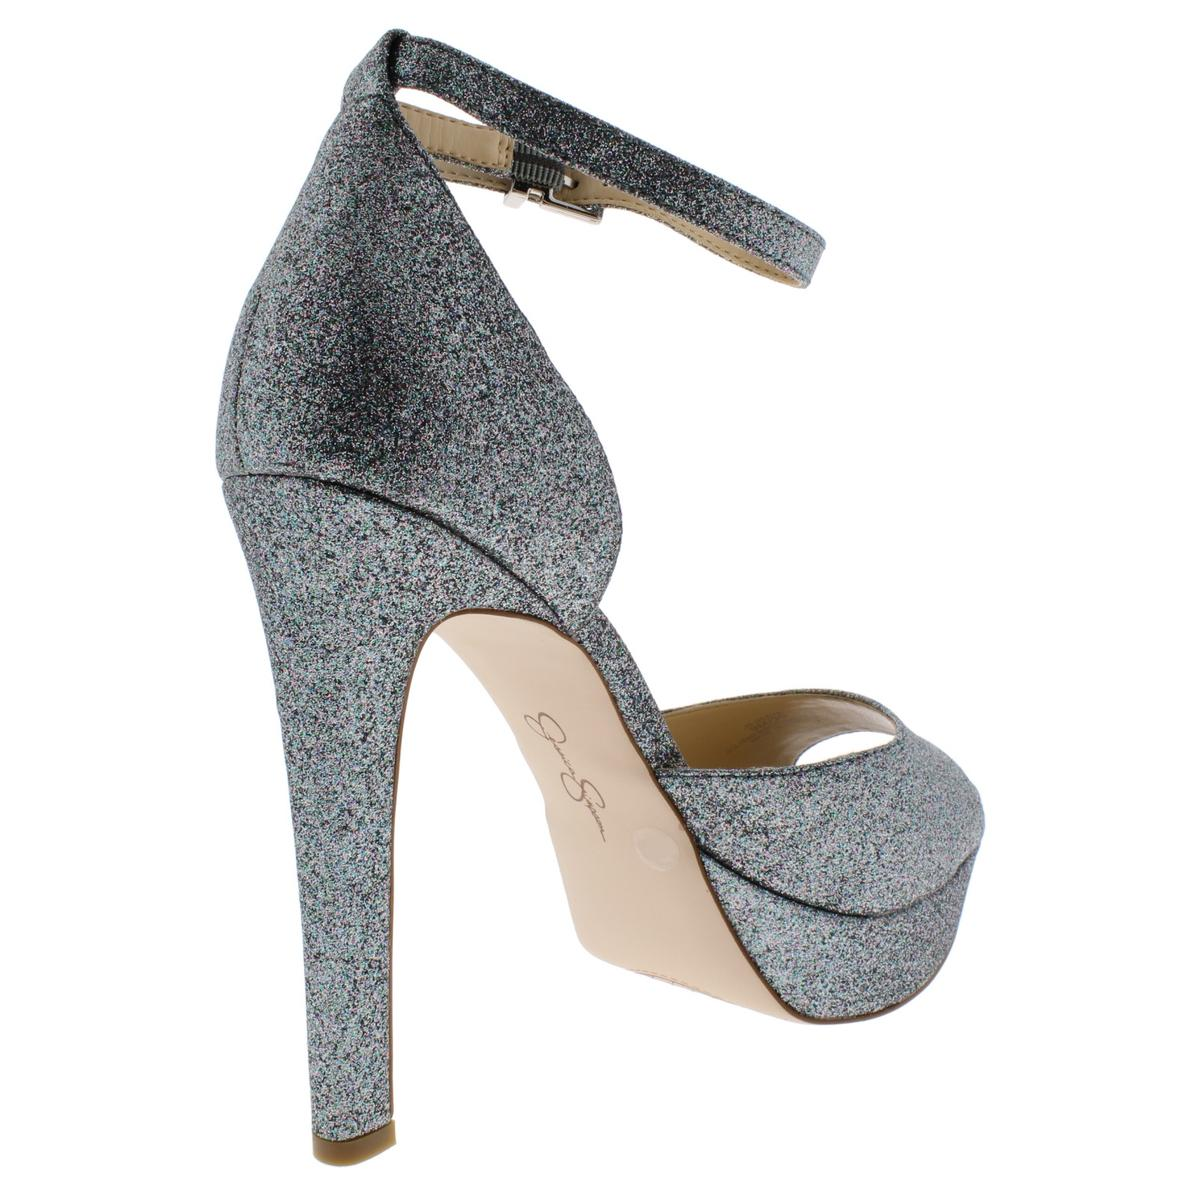 Jessica-Simpson-Women-039-s-Beeya-Ankle-Strap-Platform-Heeled-Sandals-Shoes thumbnail 9